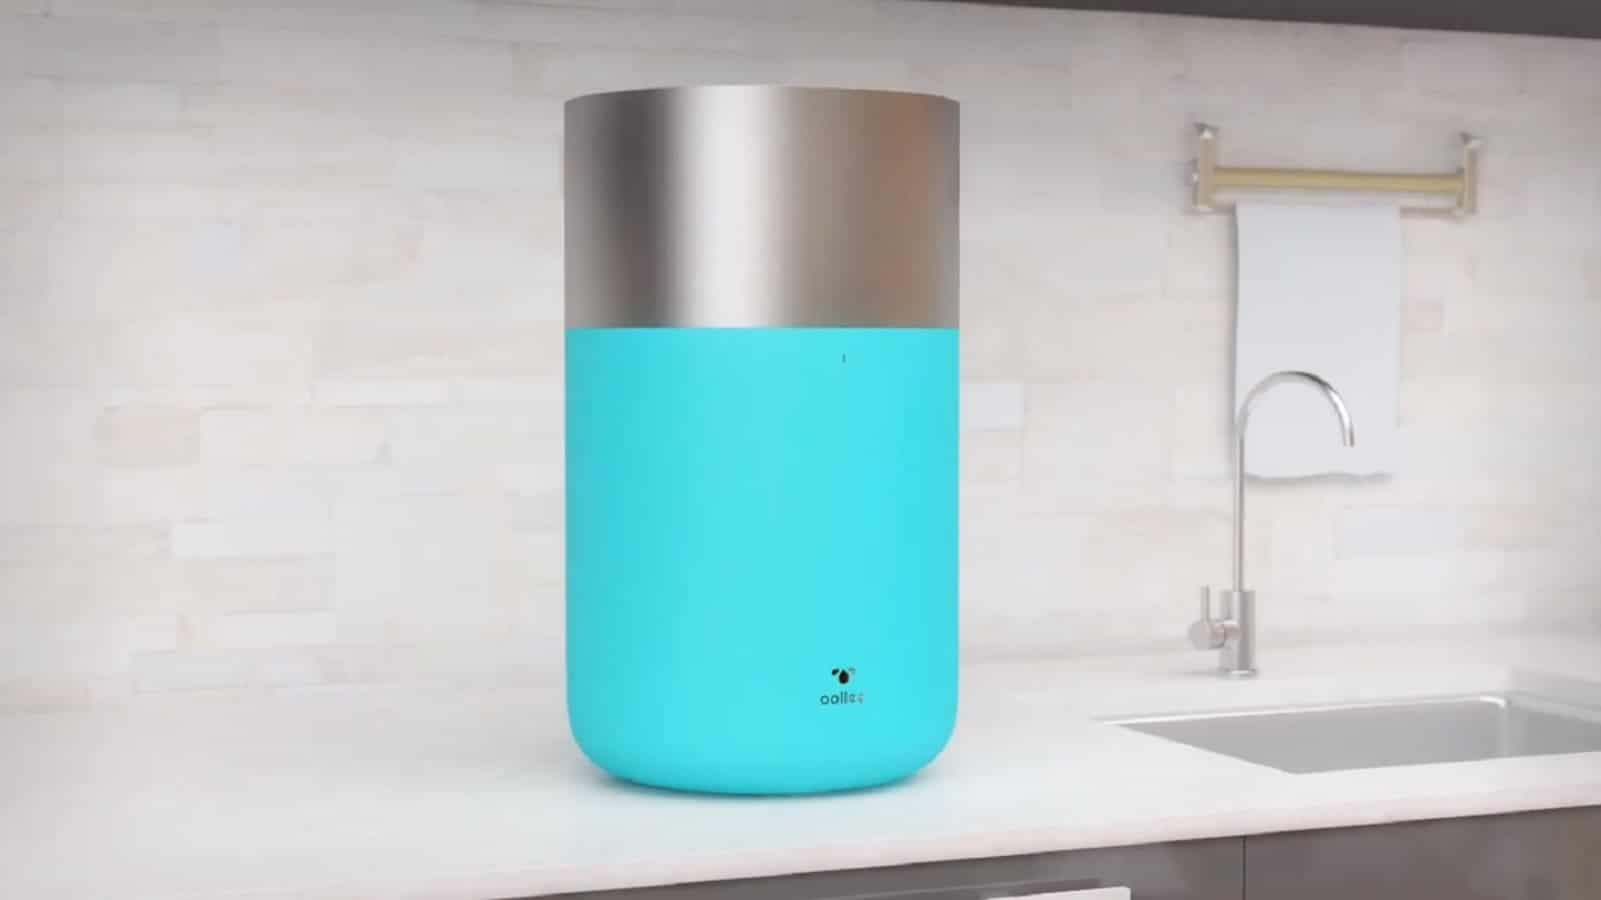 oollee water filter system